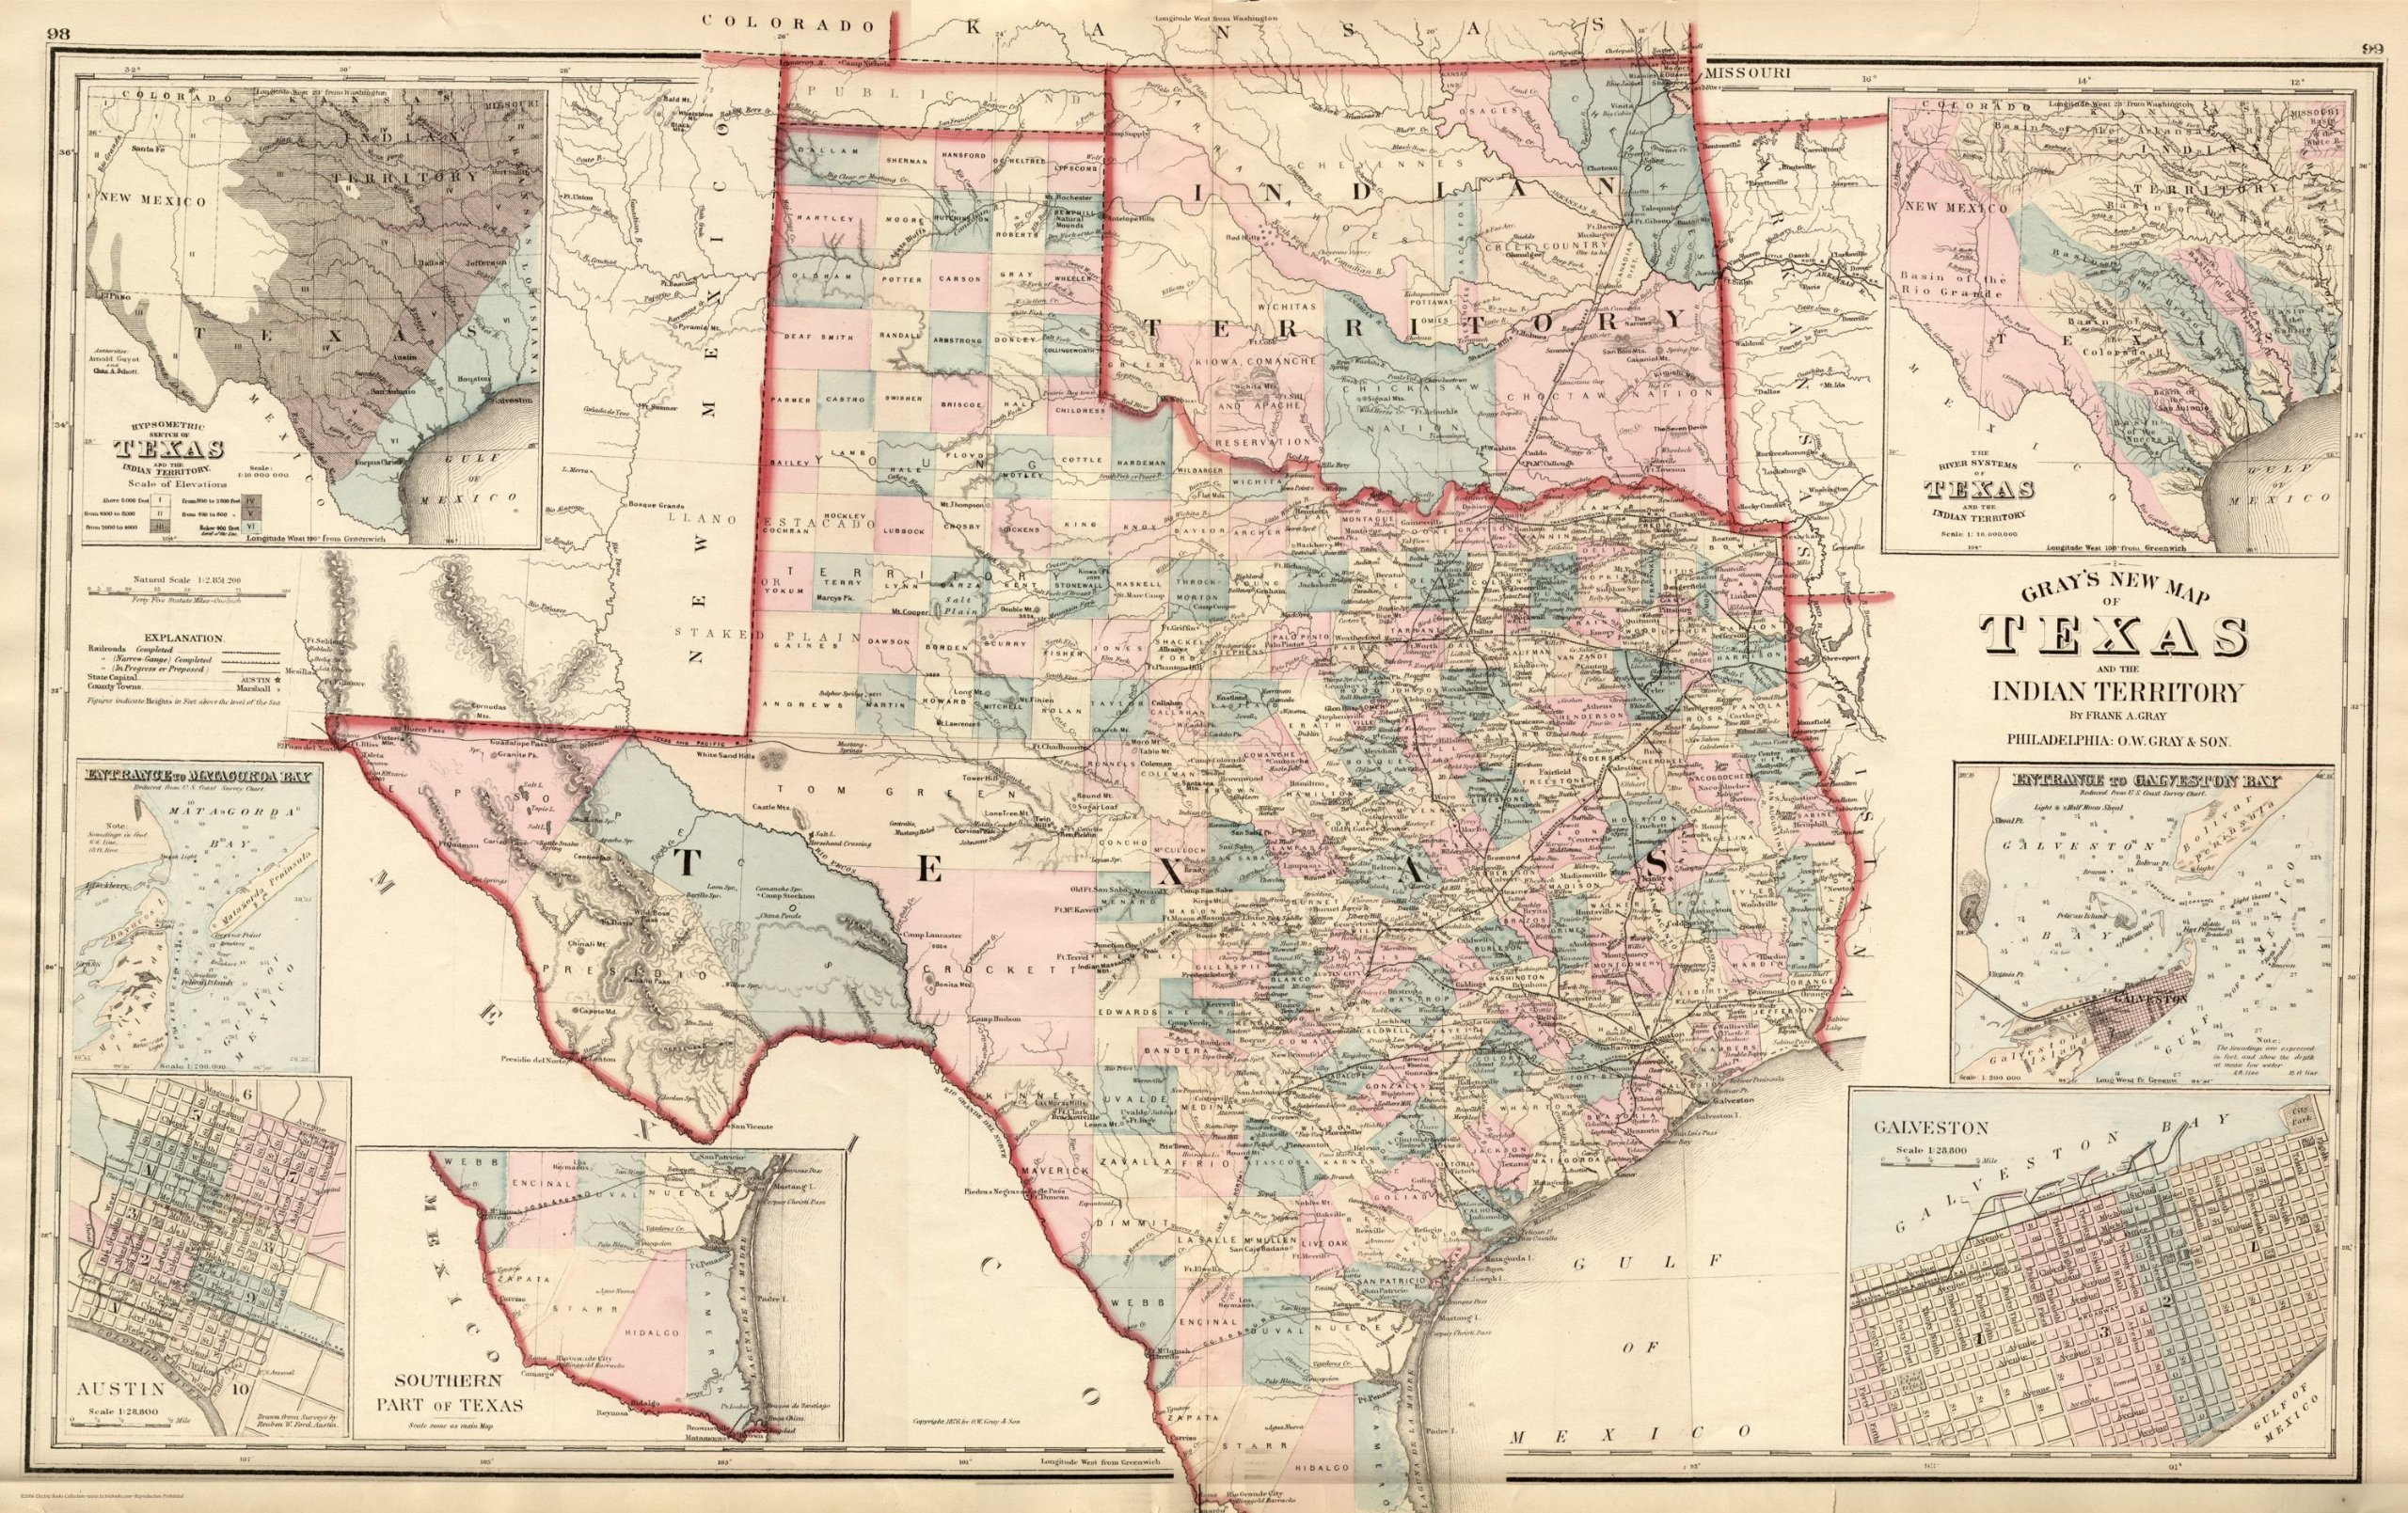 New Map Of Texas.1876 Texas County Map O W Gray Atlas Superb Print 16 Texas Map